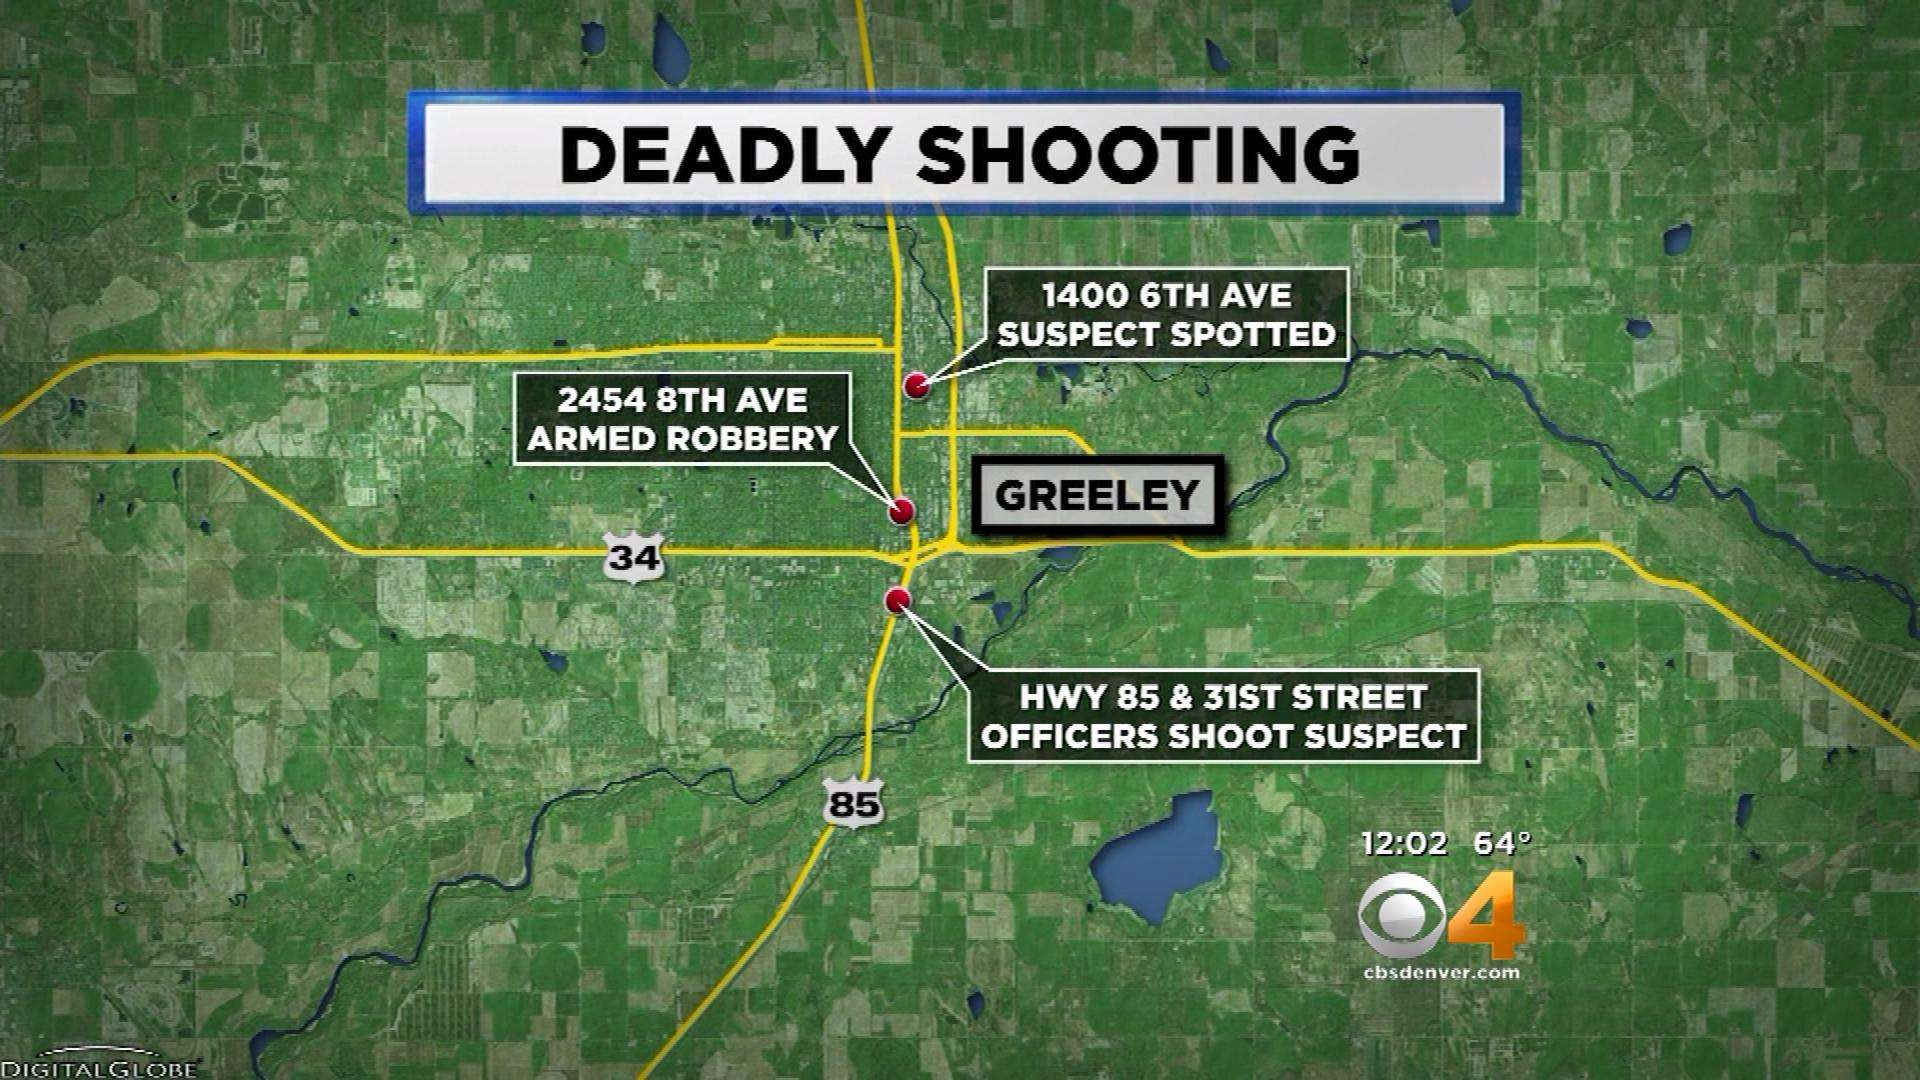 Deadly Shooting Map